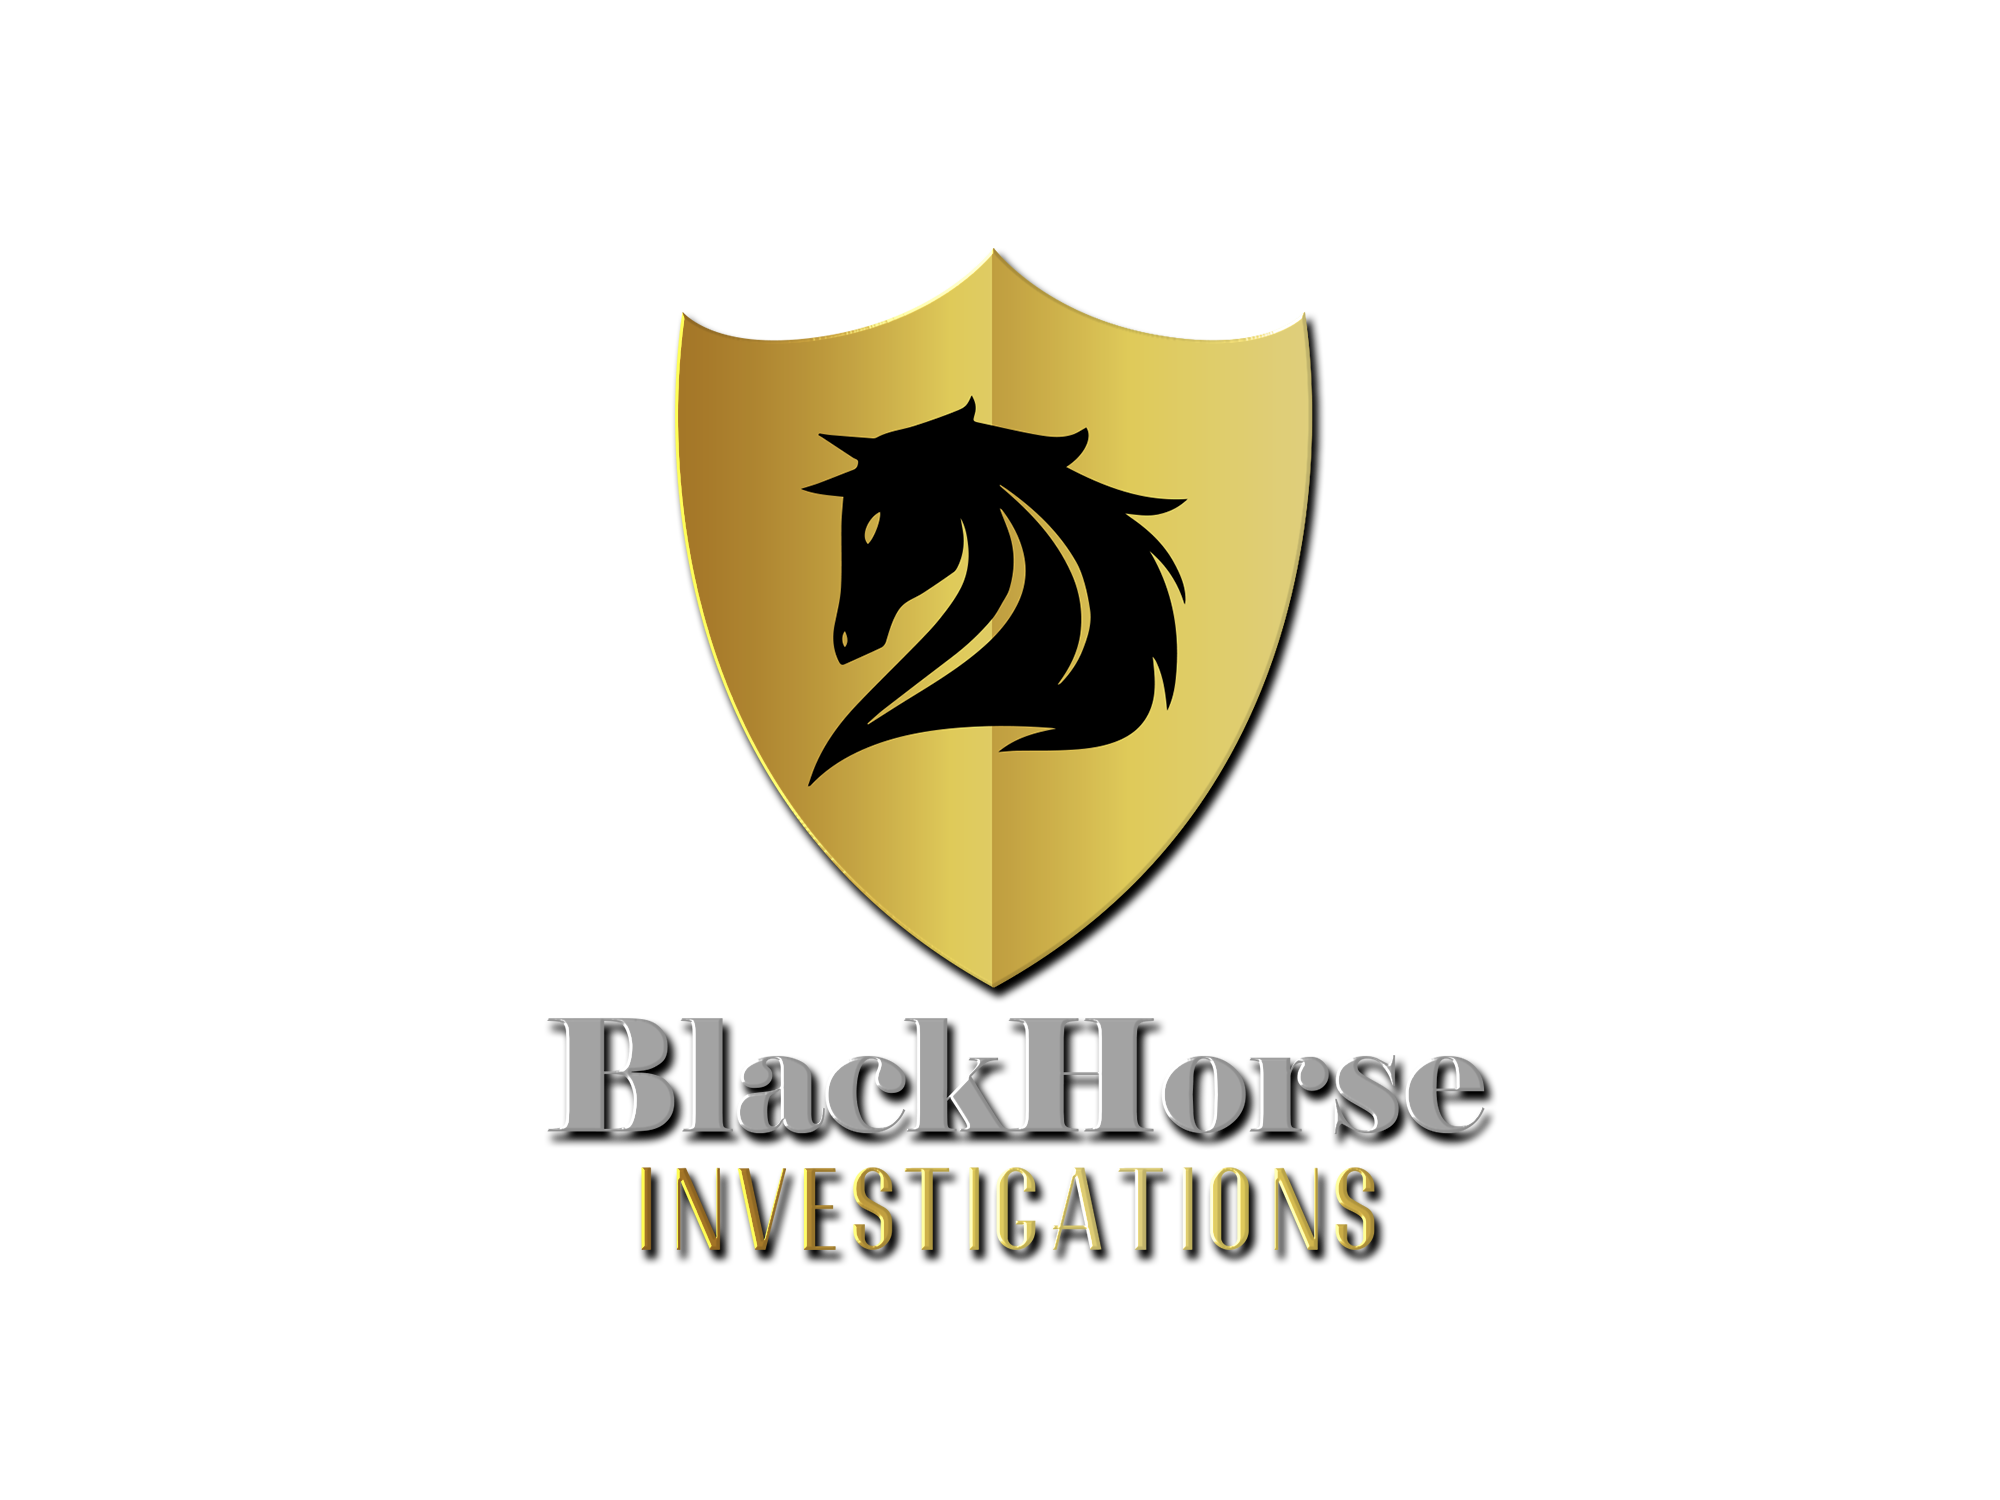 Blackhorse Investigations LLC